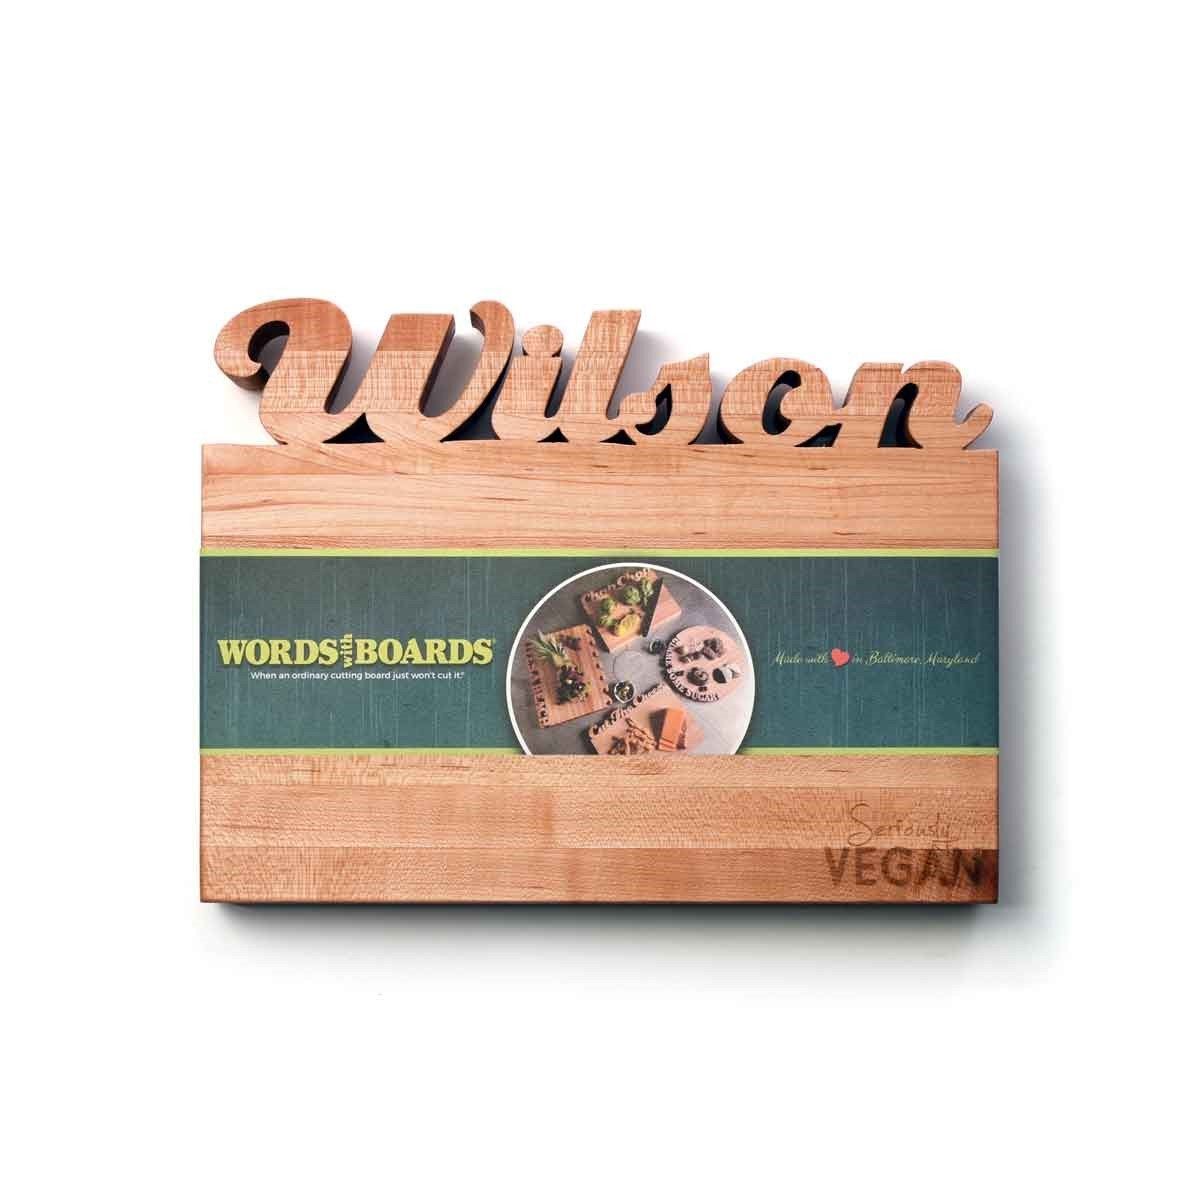 Vegan products - custom cutting board - words with boards1